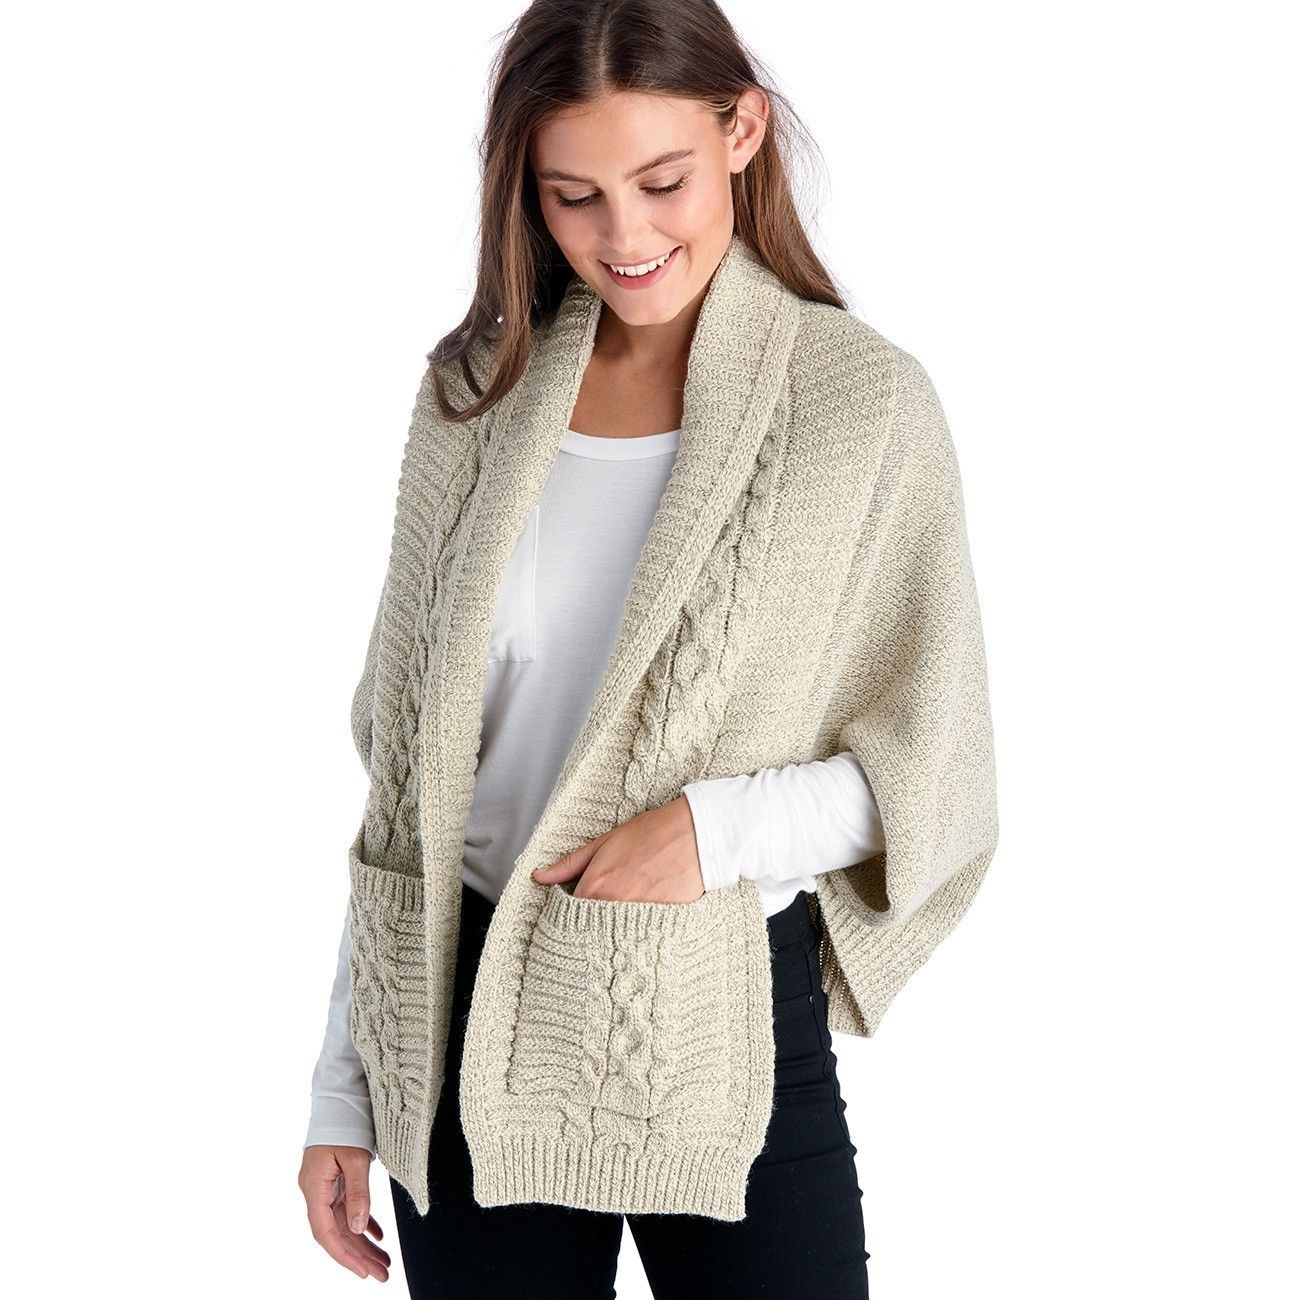 Cable Knit Shrug Cardigan Products Pinterest Knit Shrug Shrug